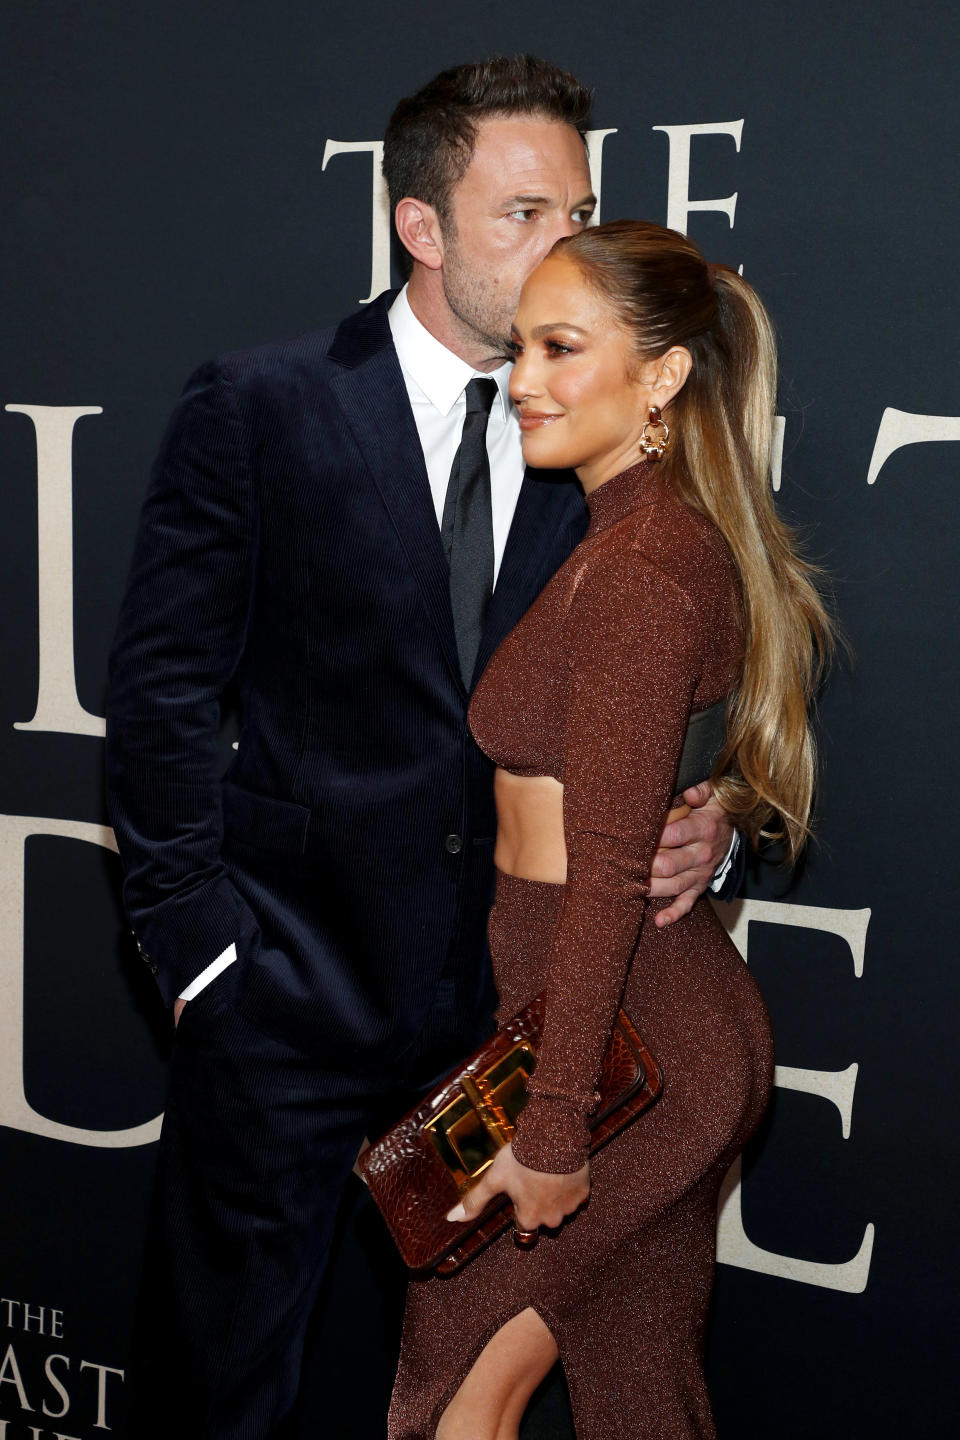 NEW YORK, NEW YORK – OCTOBER 09: Ben Affleck and Jennifer Lopez attend The Last Duel New York Premiere on October 09, 2021 in New York City. (Photo by Astrid Stawiarz/Getty Images for 20th Century Studios) - Credit: Getty Images for 20th Century Studios